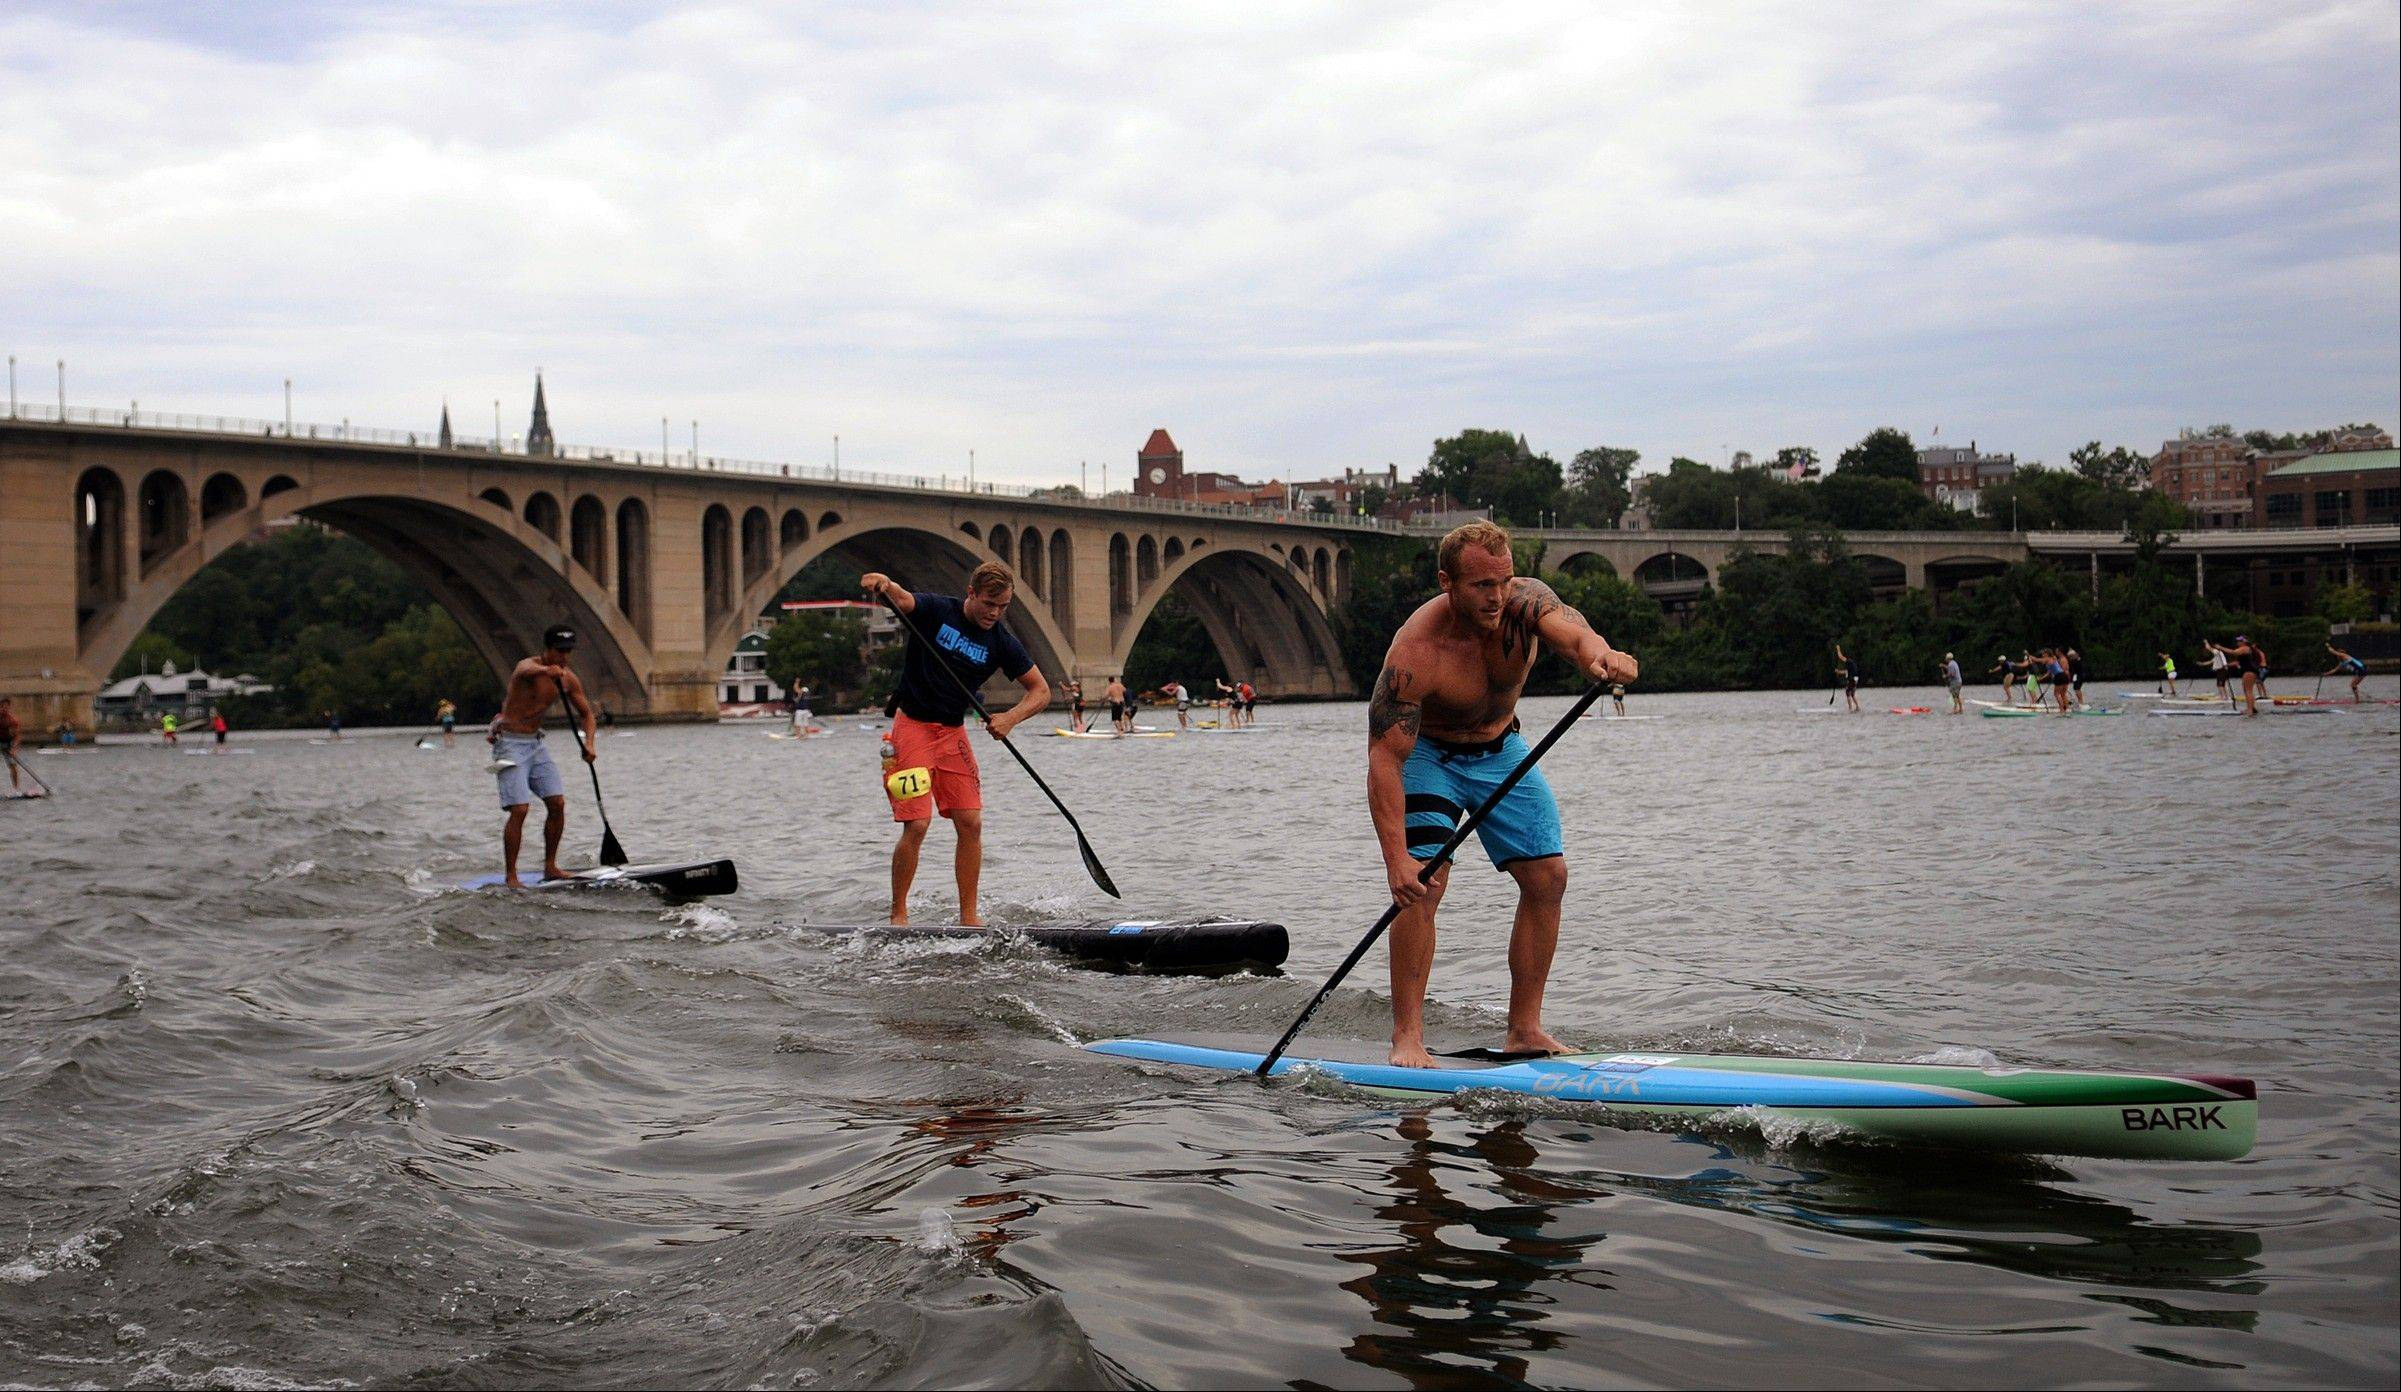 Christopher Johnson of North Carolina takes the lead during the Waterman's Paddle for Humanity competition on the Potomac River in Washington, D.C.